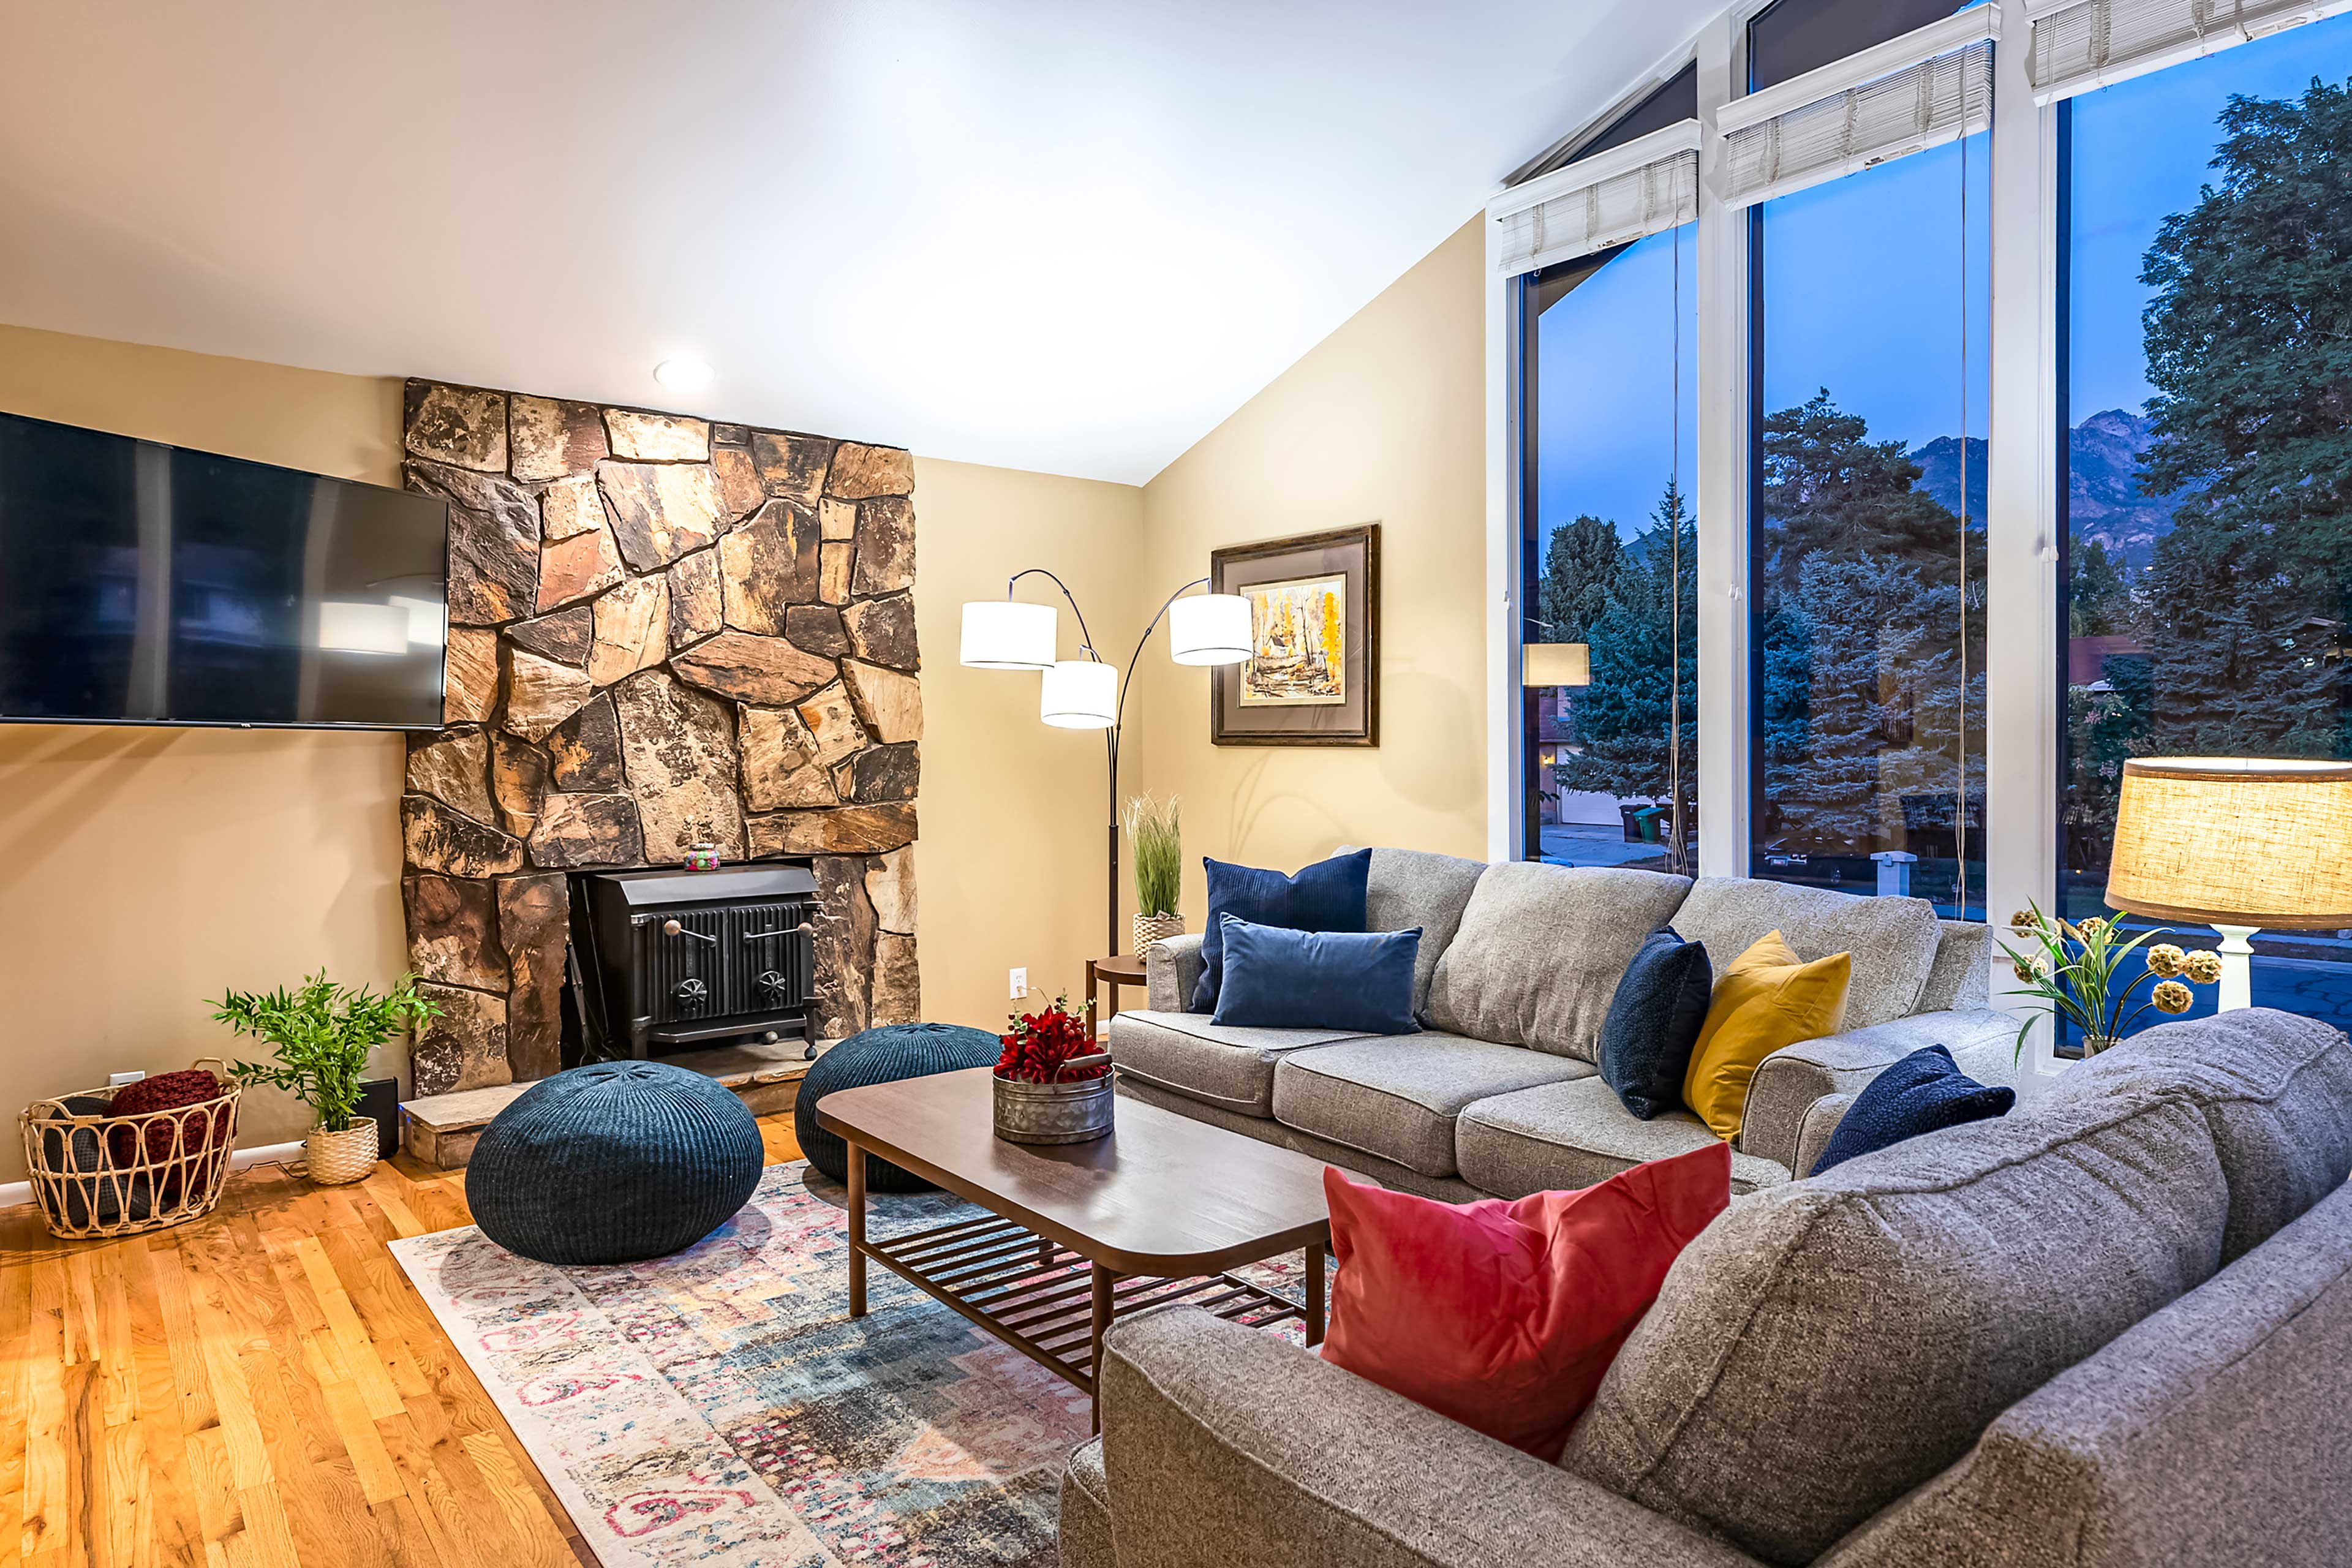 Gather in the living room around the Smart TV and wood-burning stove.